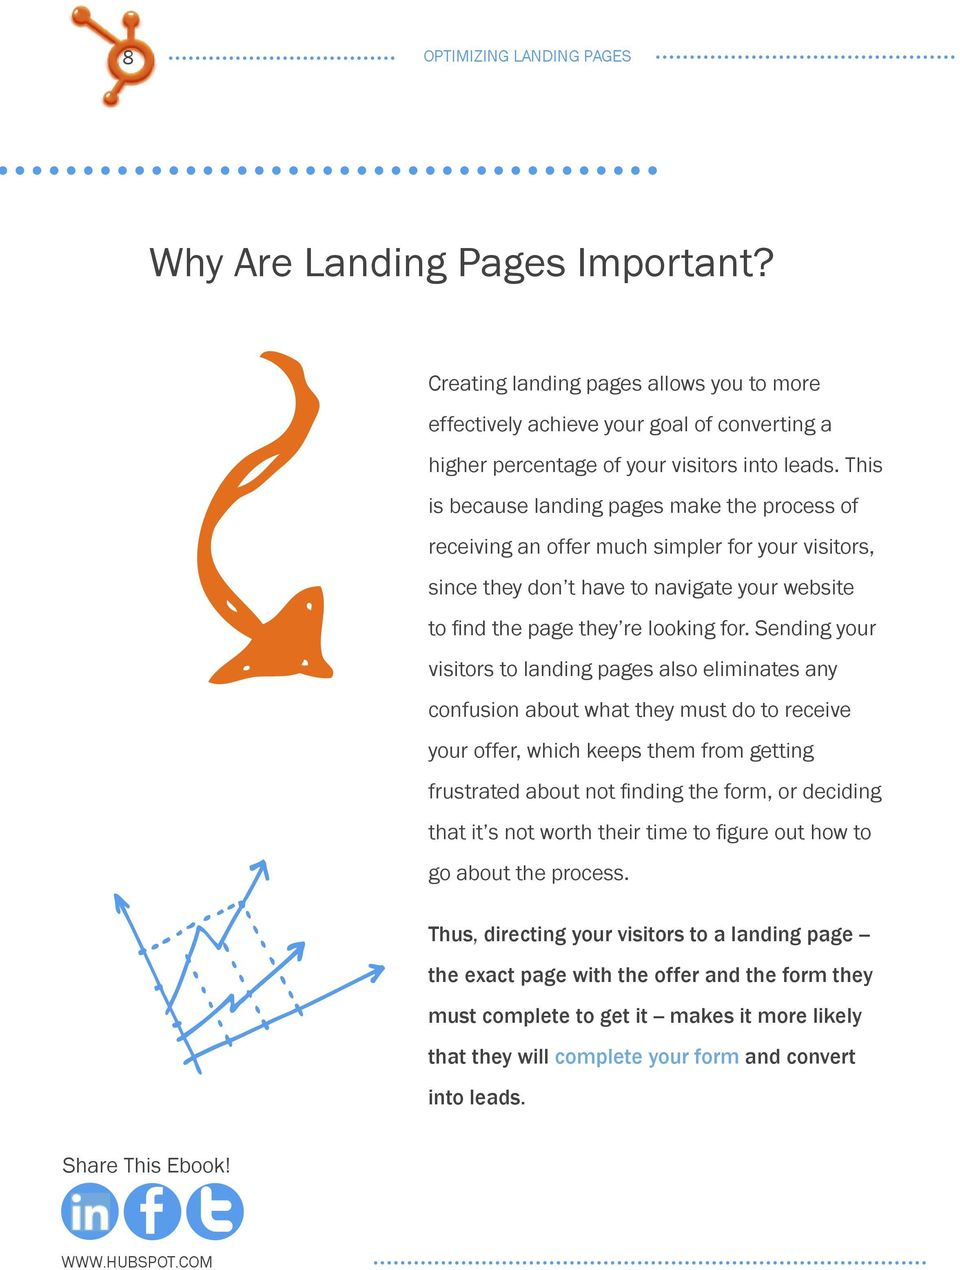 Sending your visitors to landing pages also eliminates any confusion about what they must do to receive your offer, which keeps them from getting frustrated about not finding the form, or deciding